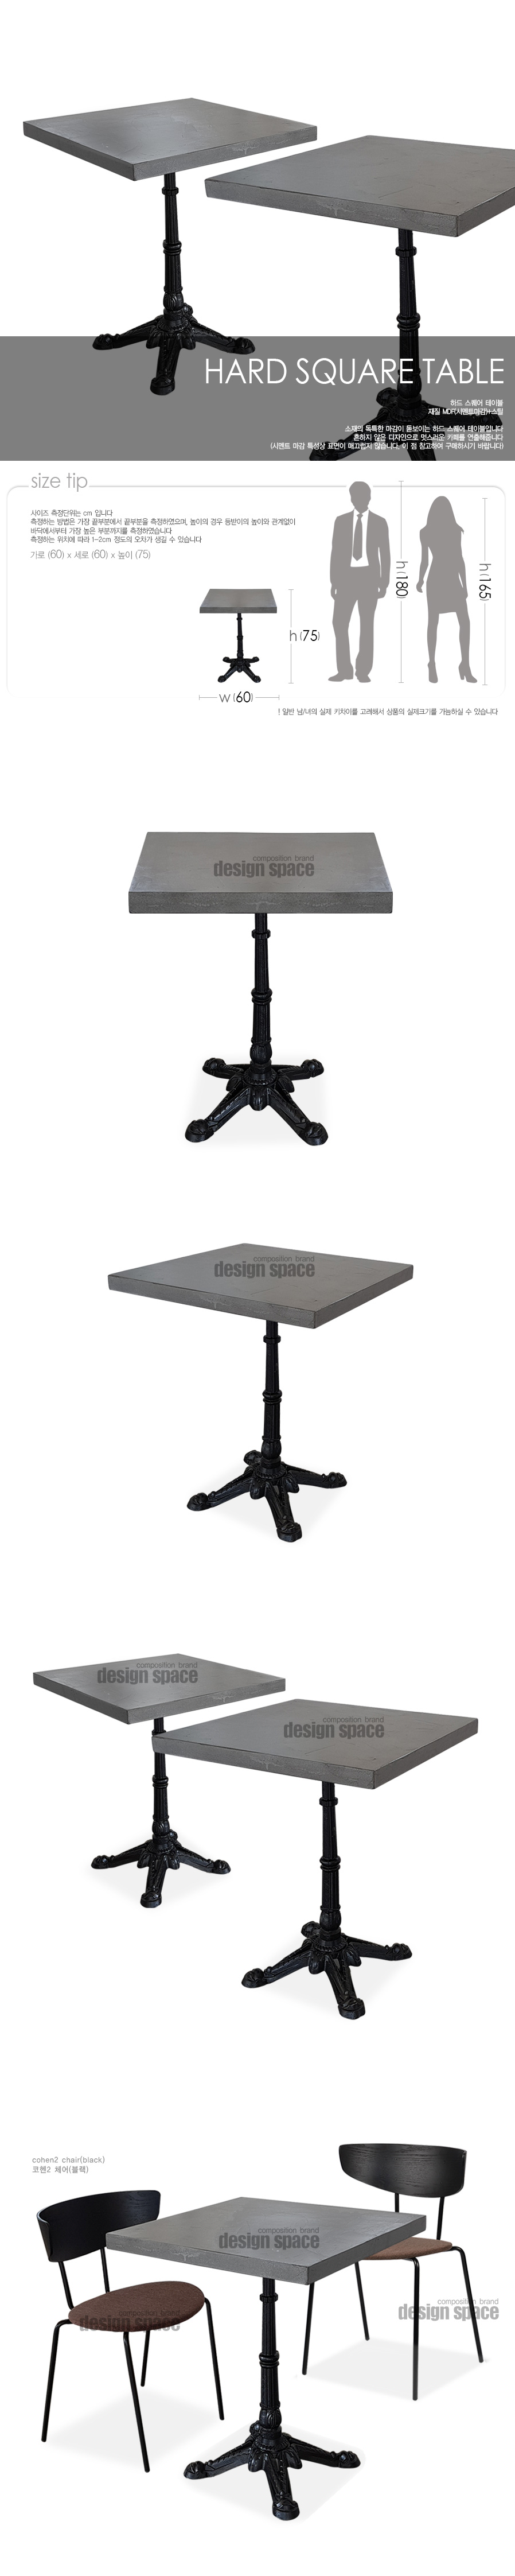 hard-square-table_01.jpg